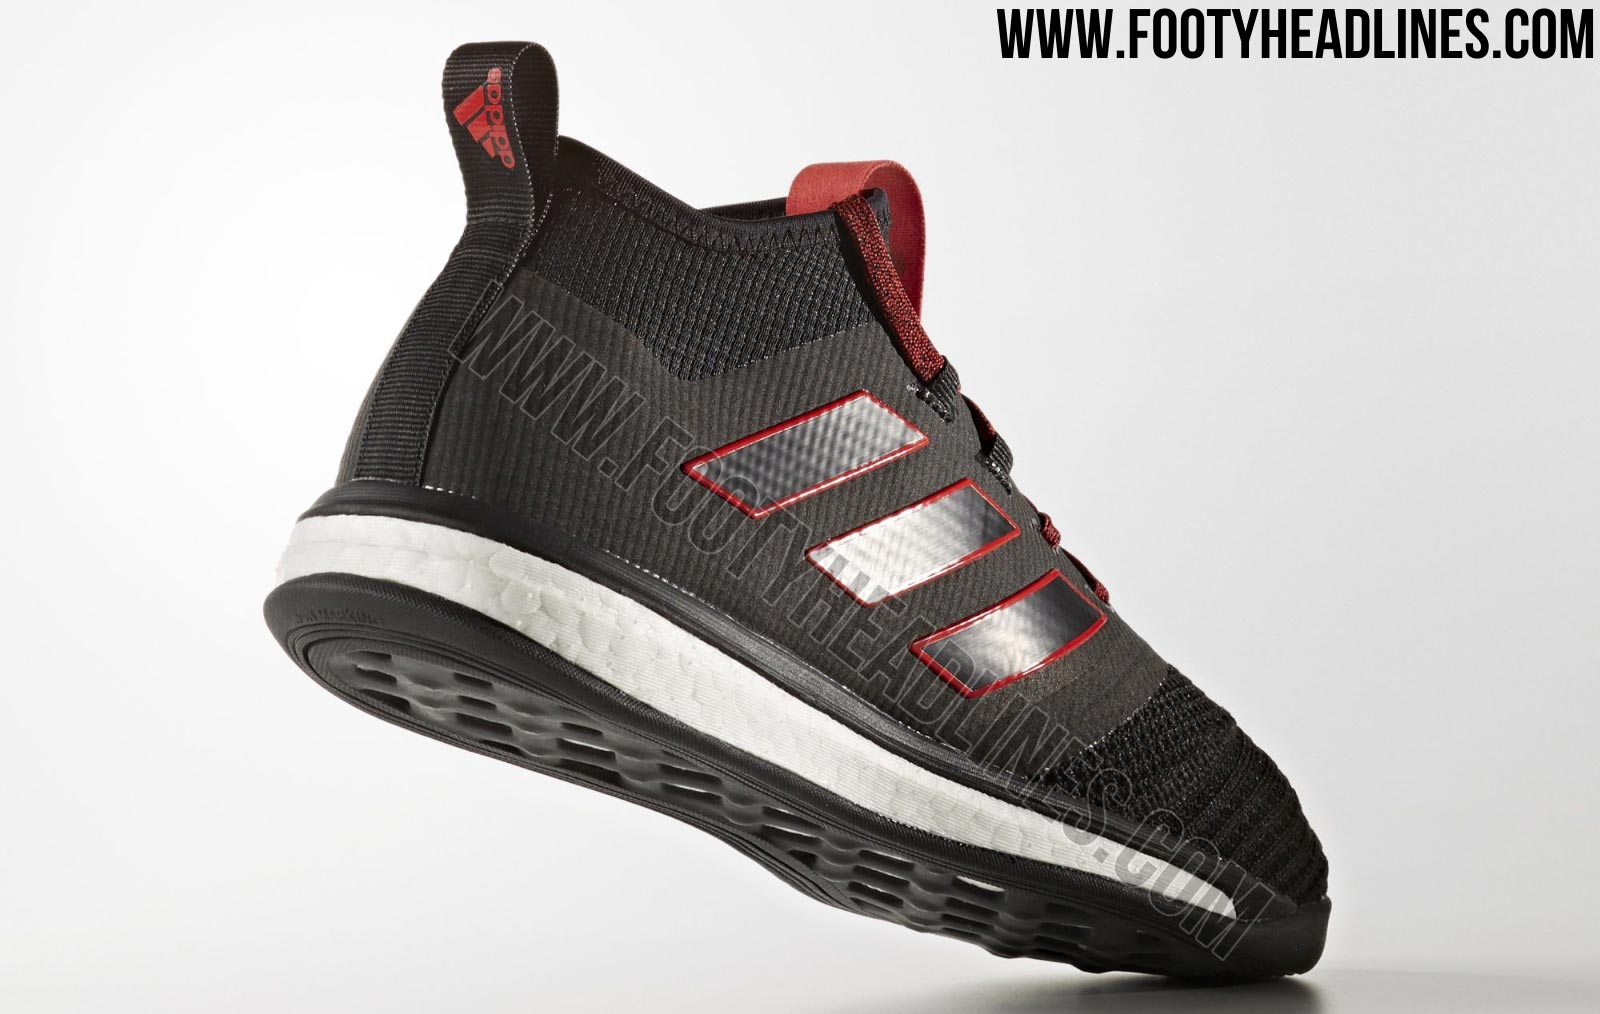 Adidas All Black Football Shoes